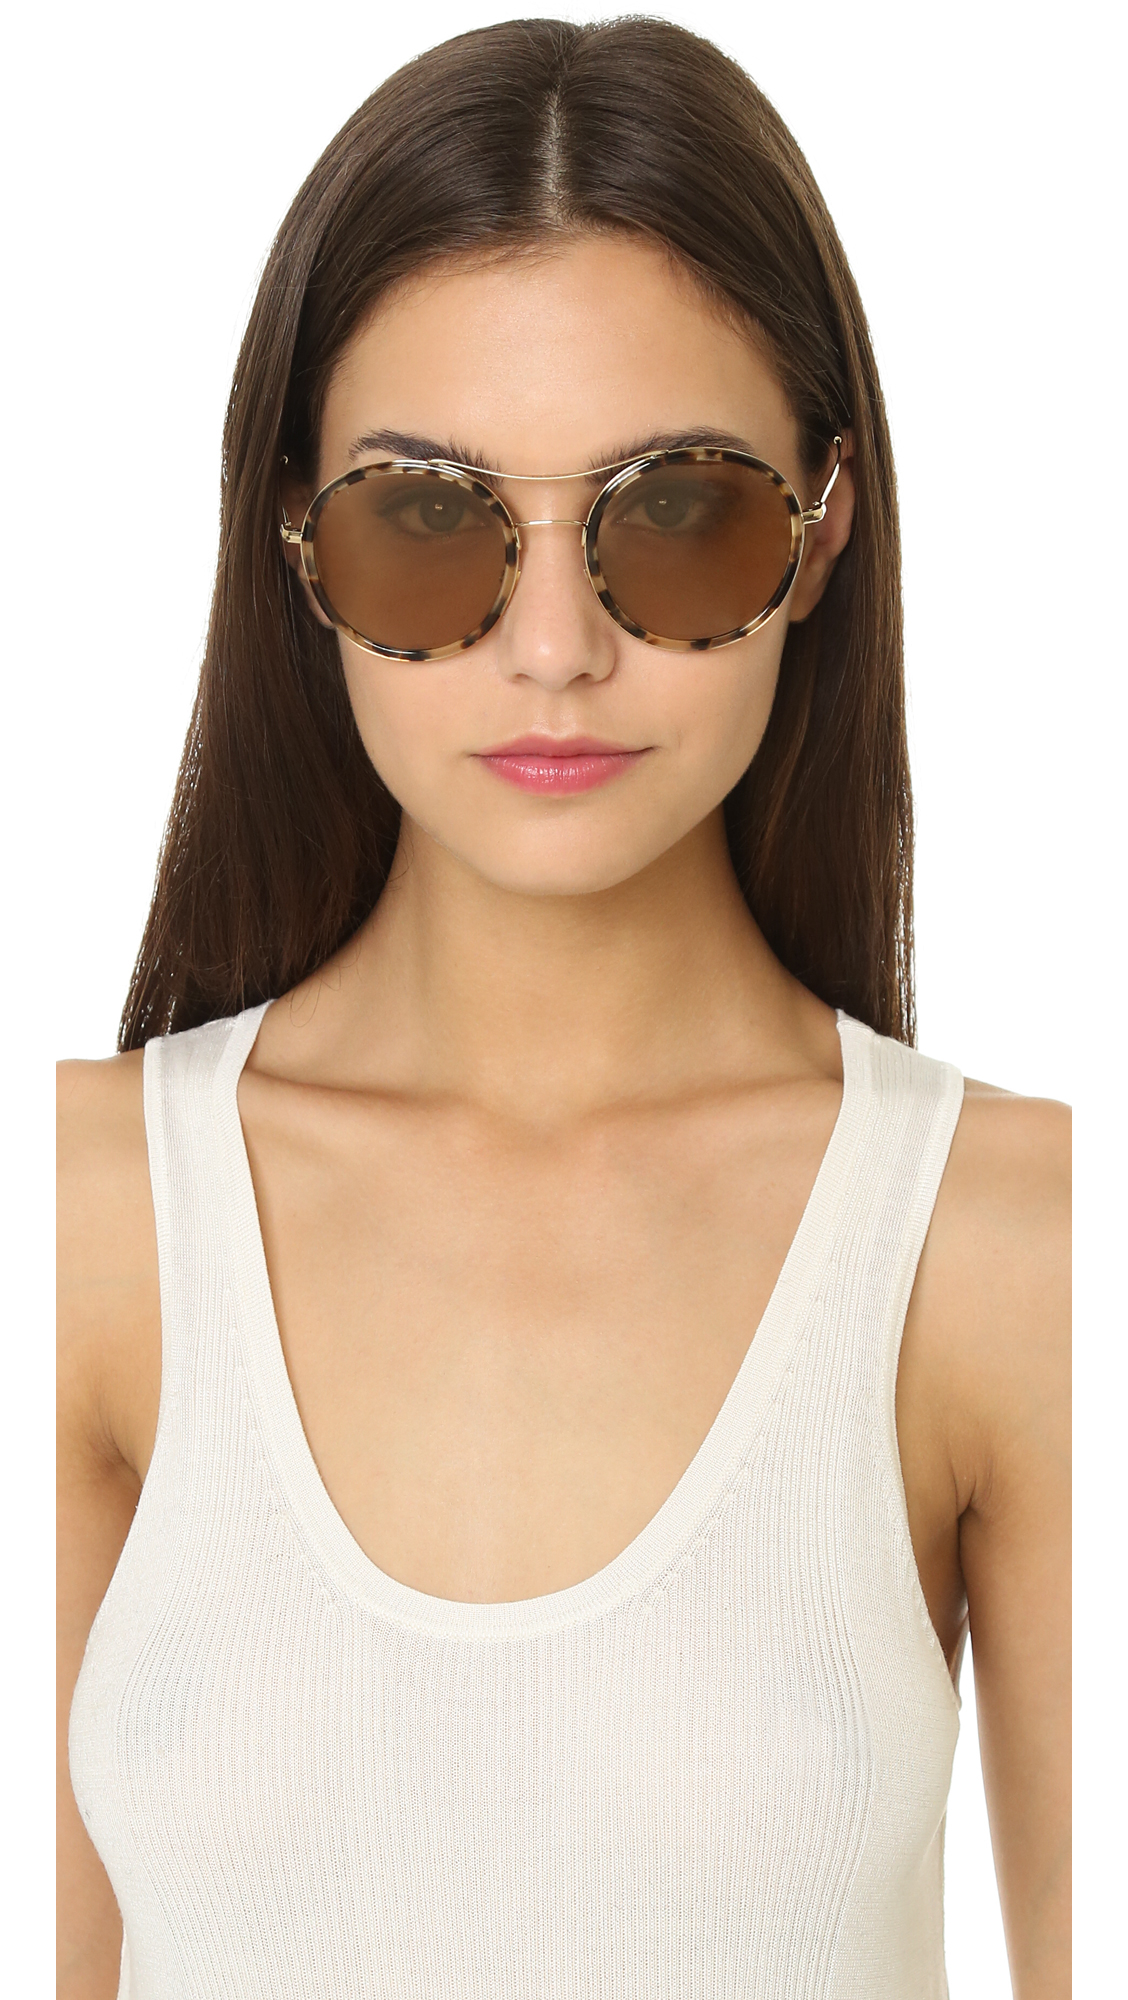 8b37dda362e Lyst - Gucci Round Aviator Sunglasses - Havana Honey Gold Brown in Brown